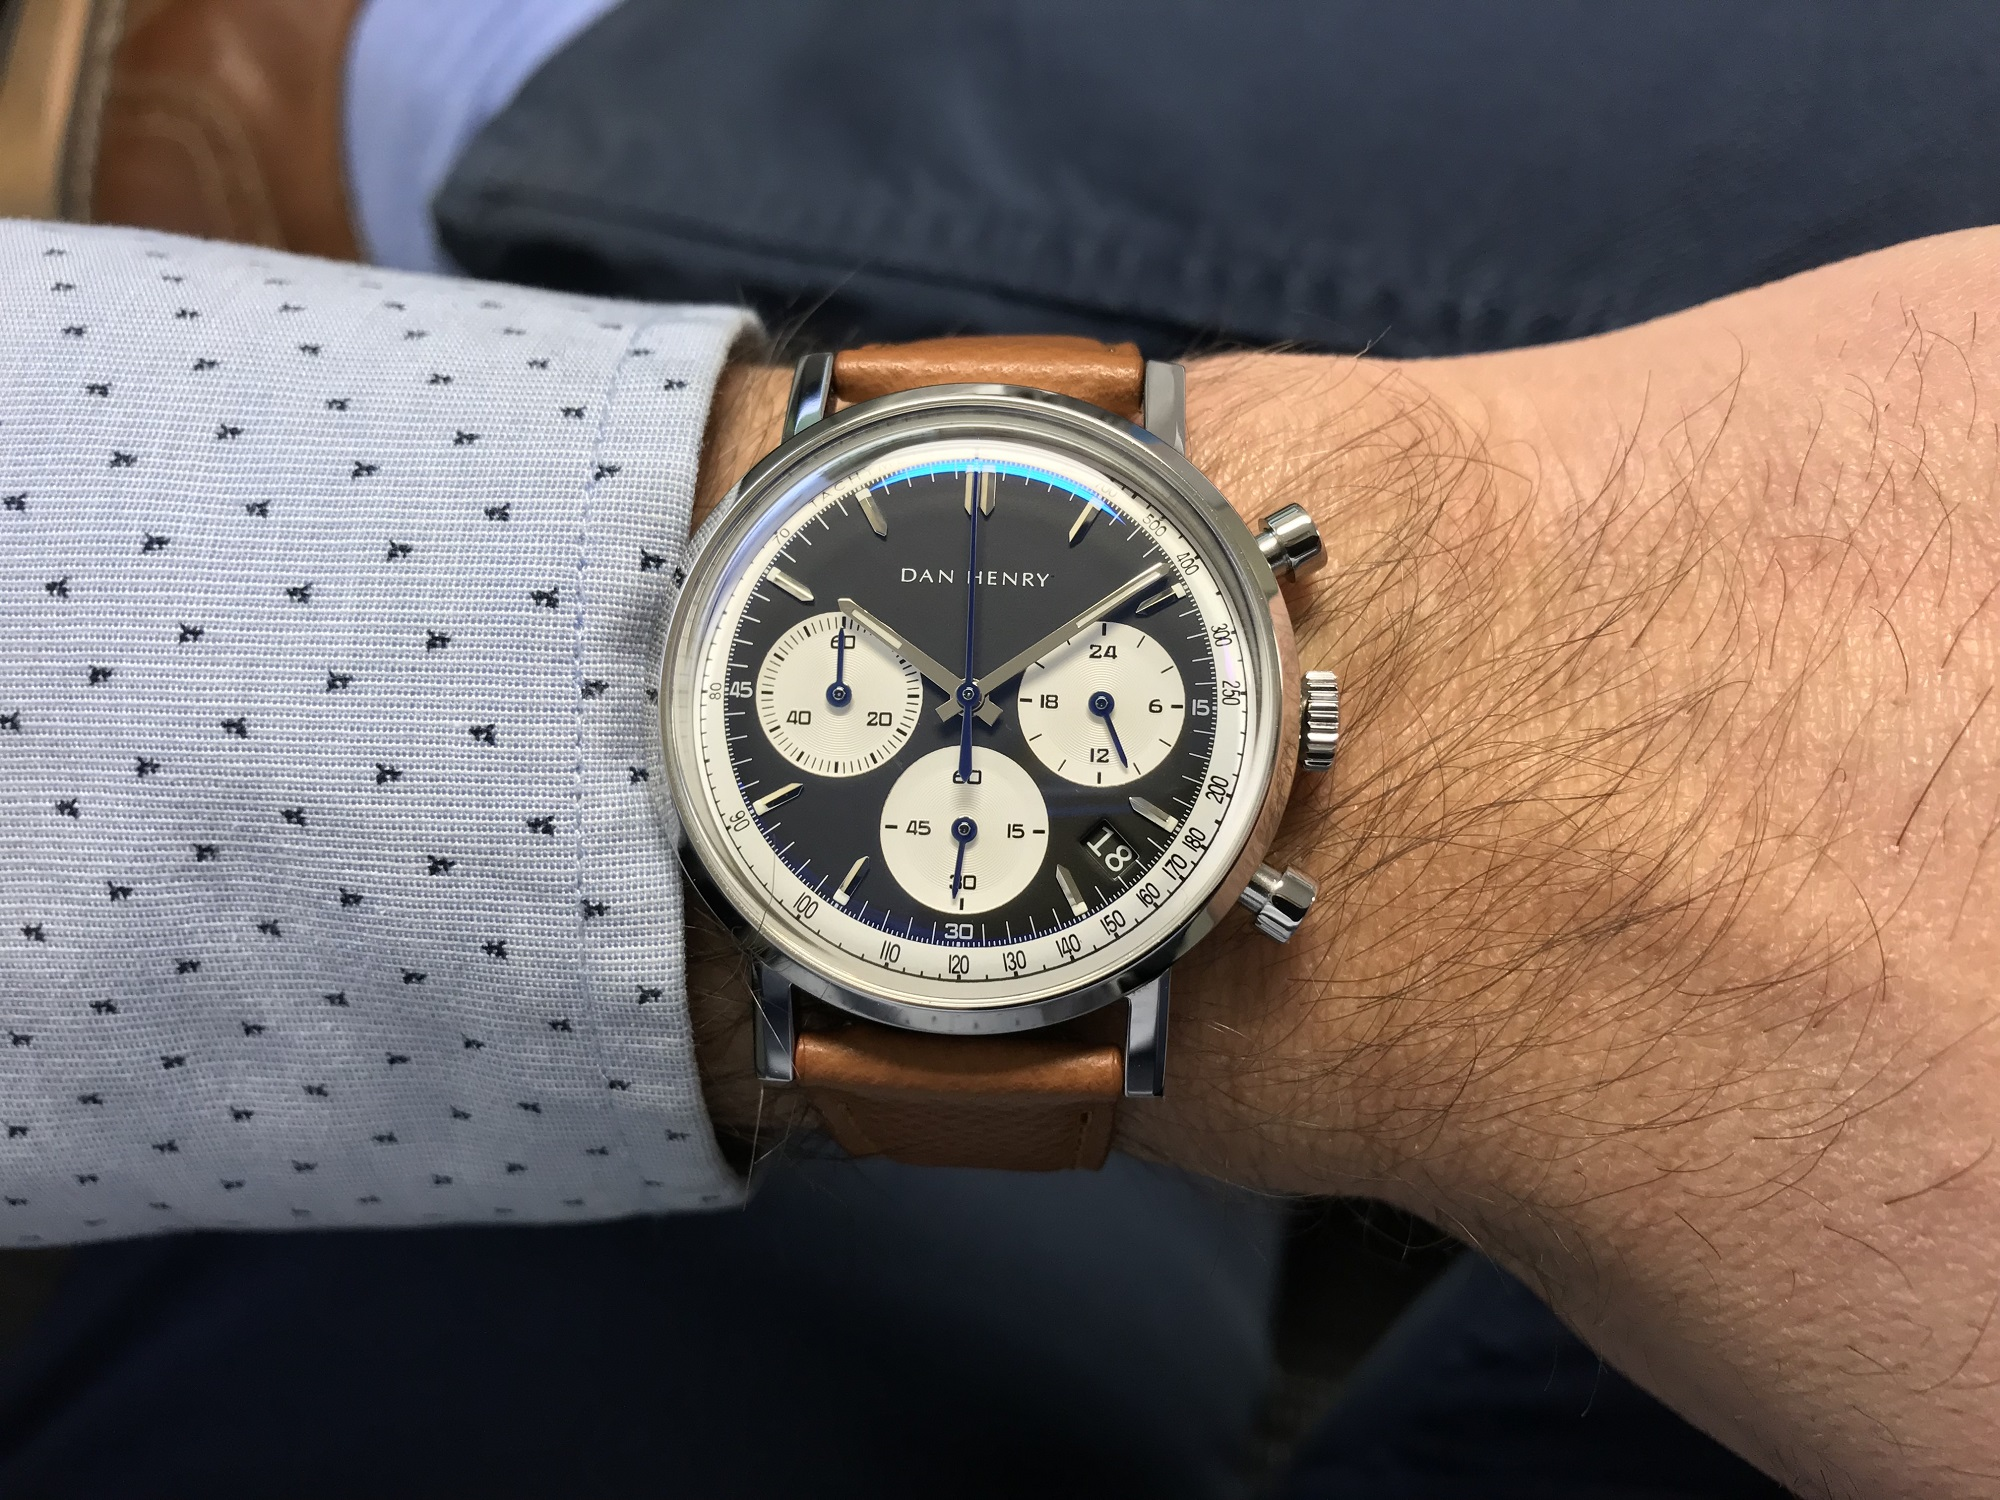 Dan Henry Watches 1964 Gran Turismo Chronograph Review